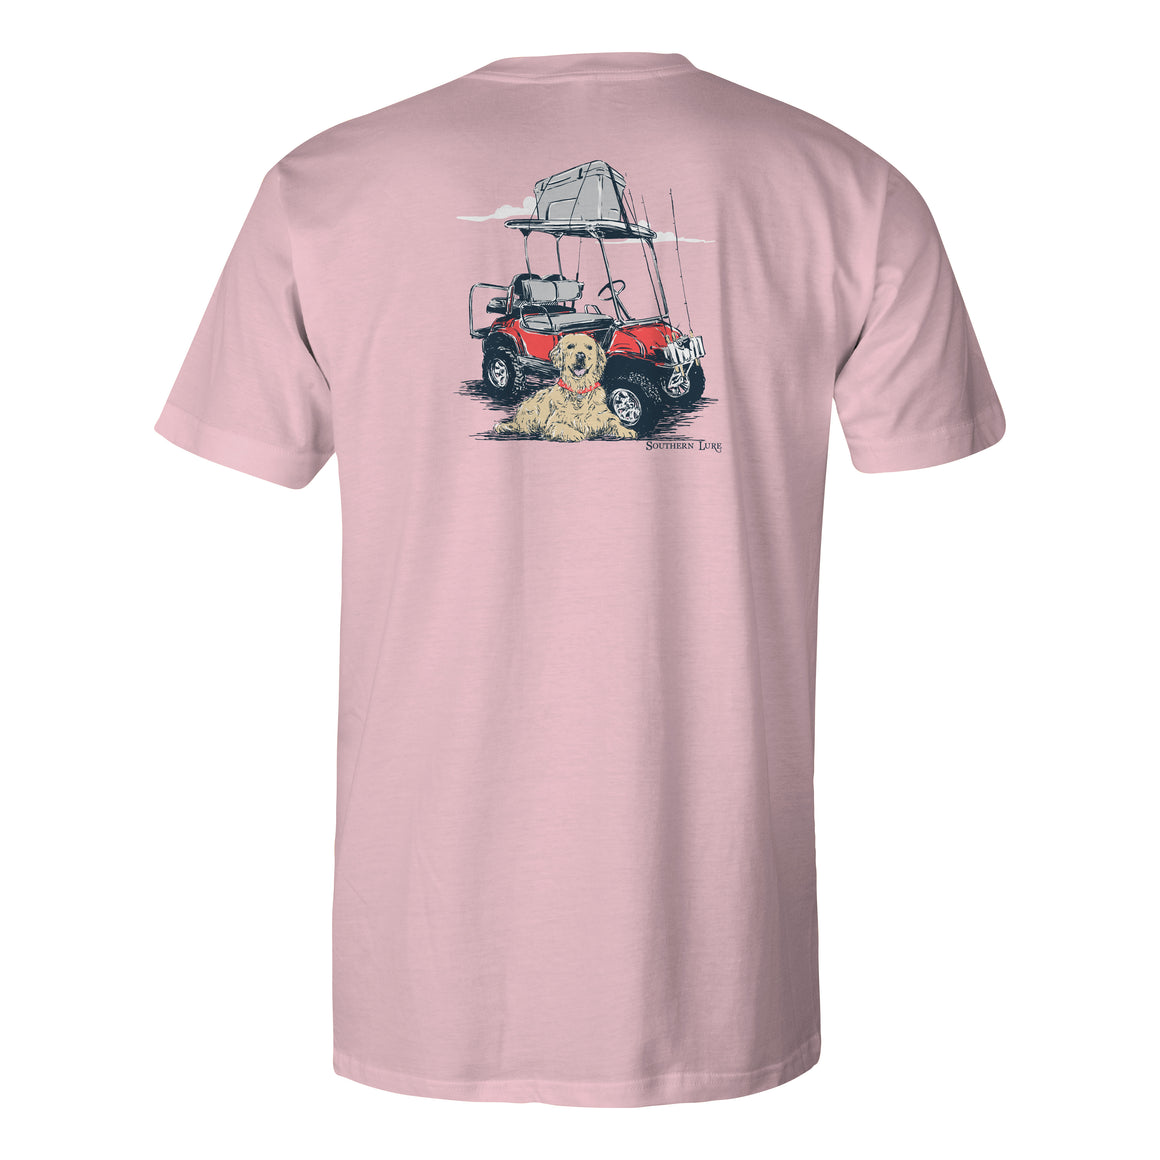 Youth & Toddler Cotton Tee - Fishing Cart V2 - Pink